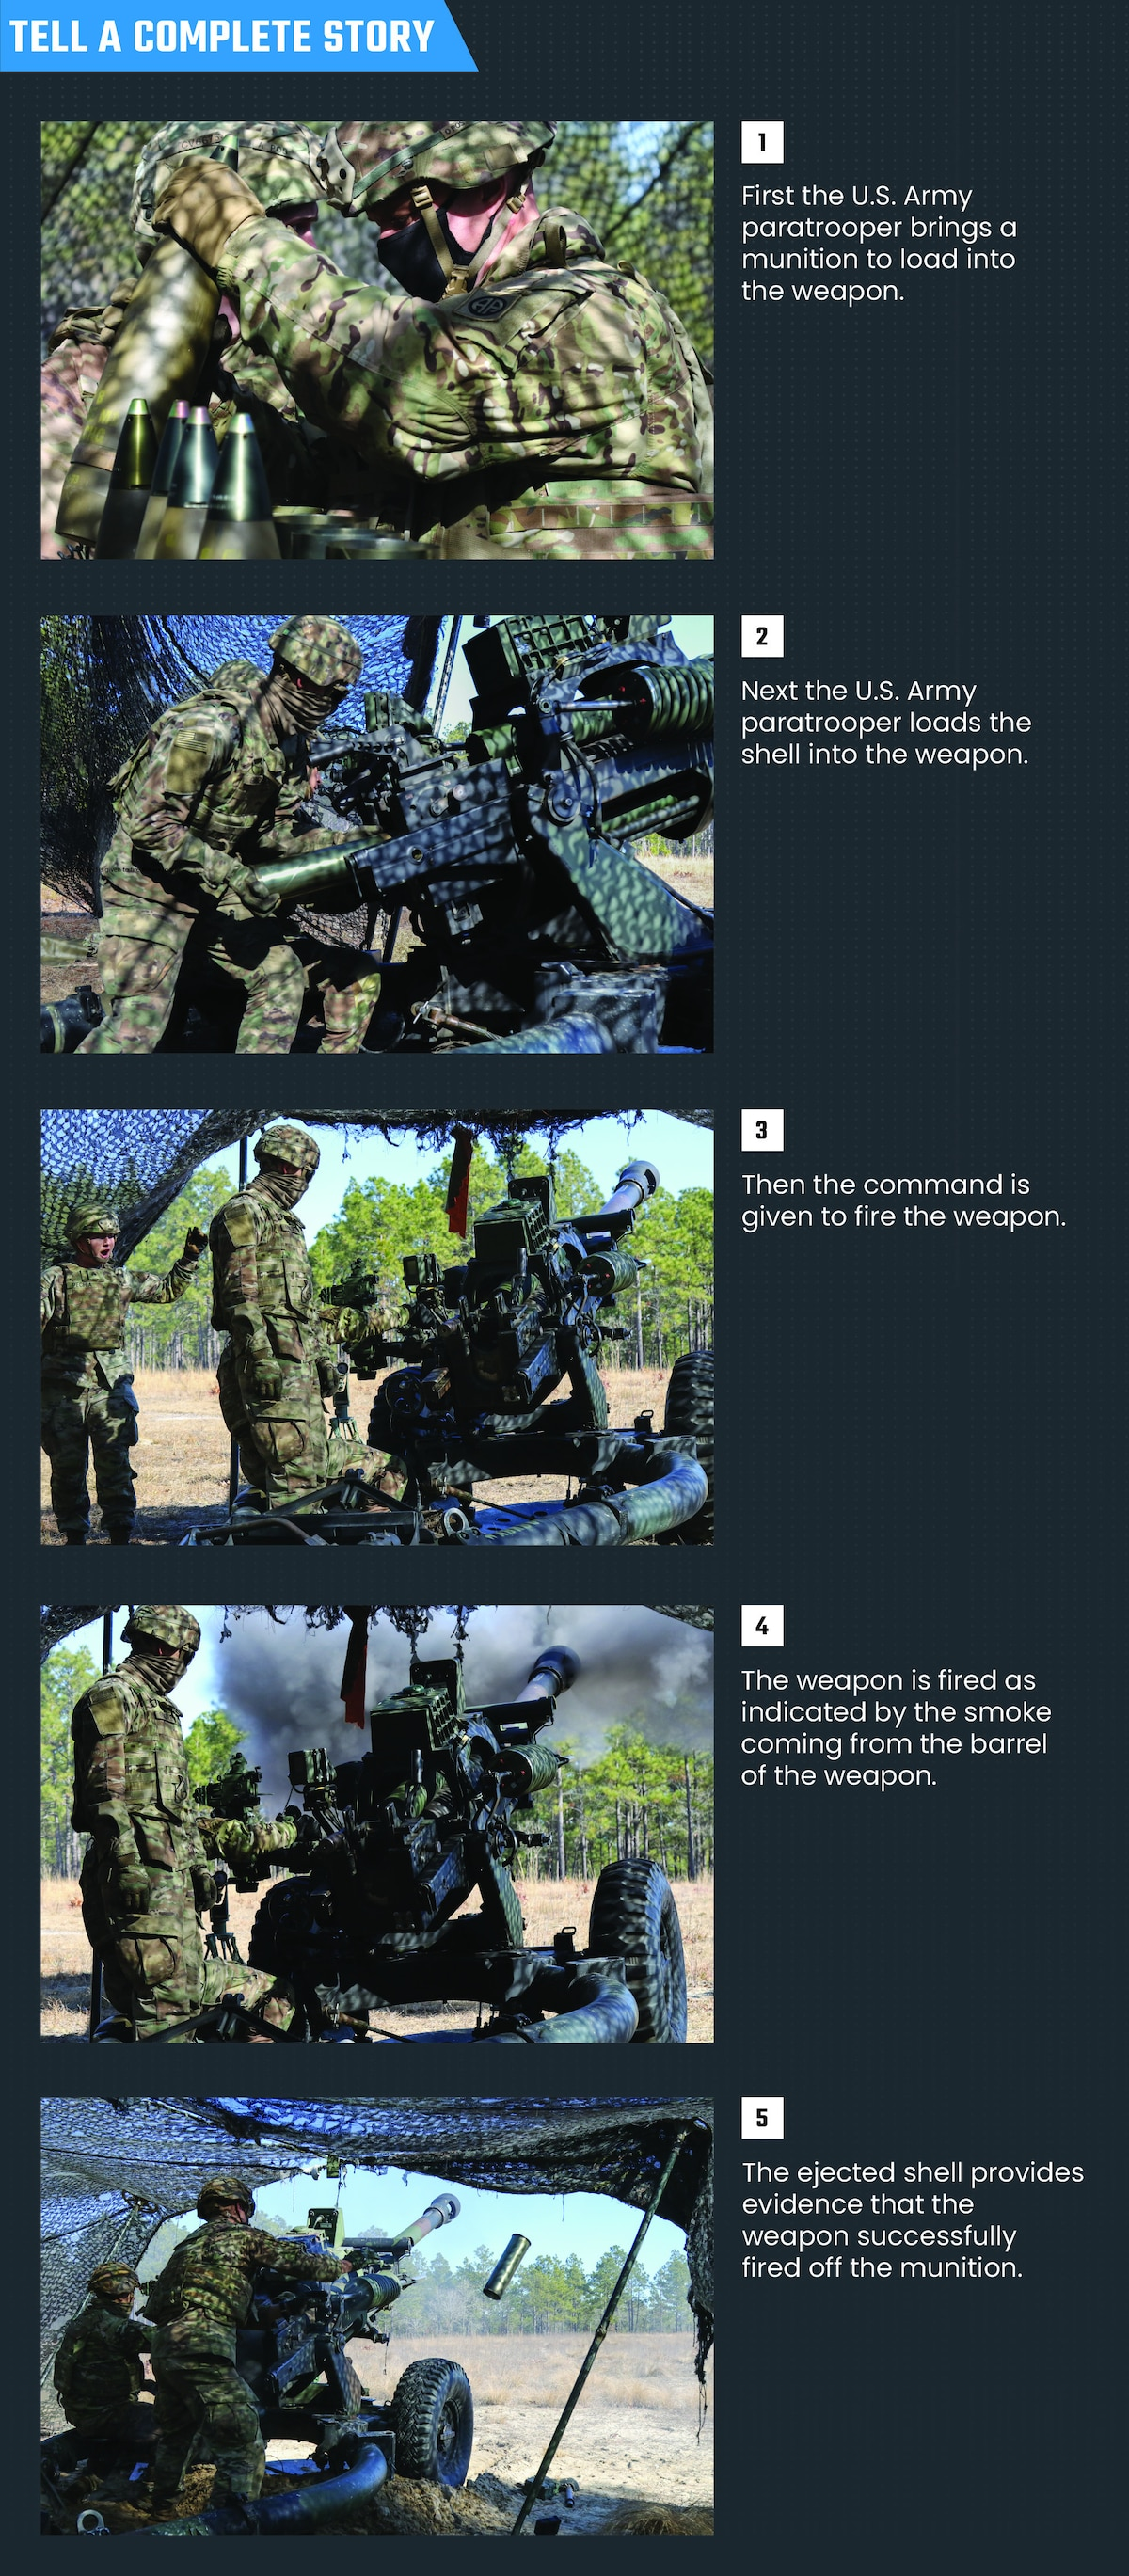 Five images are used to depict the story.  Image 1: The U.S. Army paratrooper brings a munition to load into the weapon. Image 2: The U.S. Army paratrooper loads the shell into the weapon. Image 3: The command is given to fire the weapon. Image 4: The weapon is fired, as indicated by the smoke coming from the barrel of the weapon. Image 5:  The ejected shell provides evidence the weapon successfully fired off the munition.